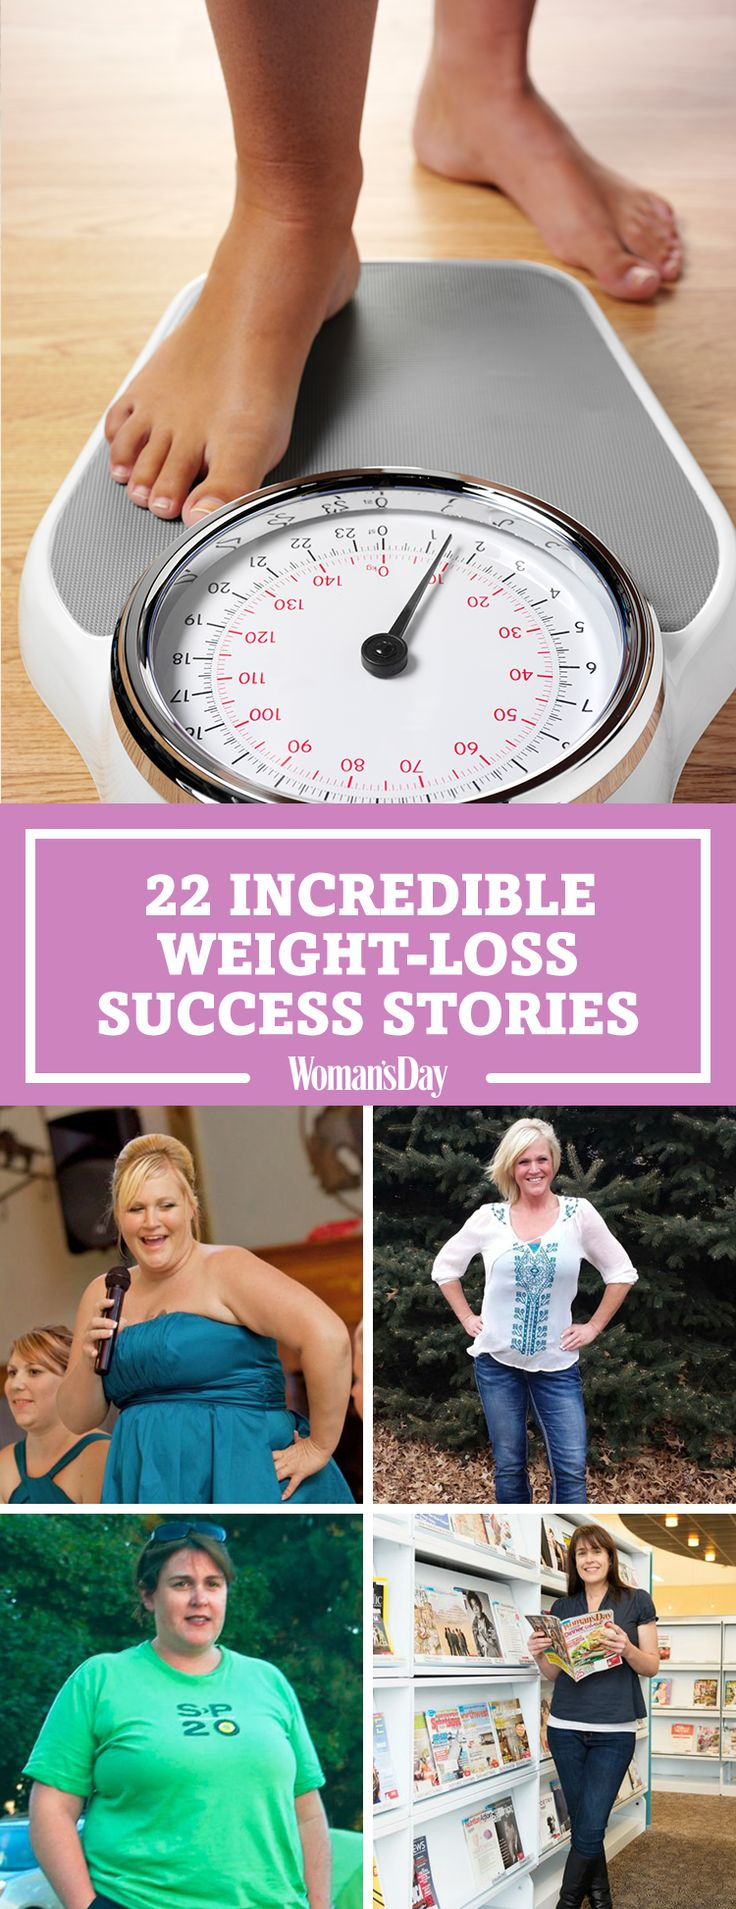 Save these ideas for weight loss from Woman's Day